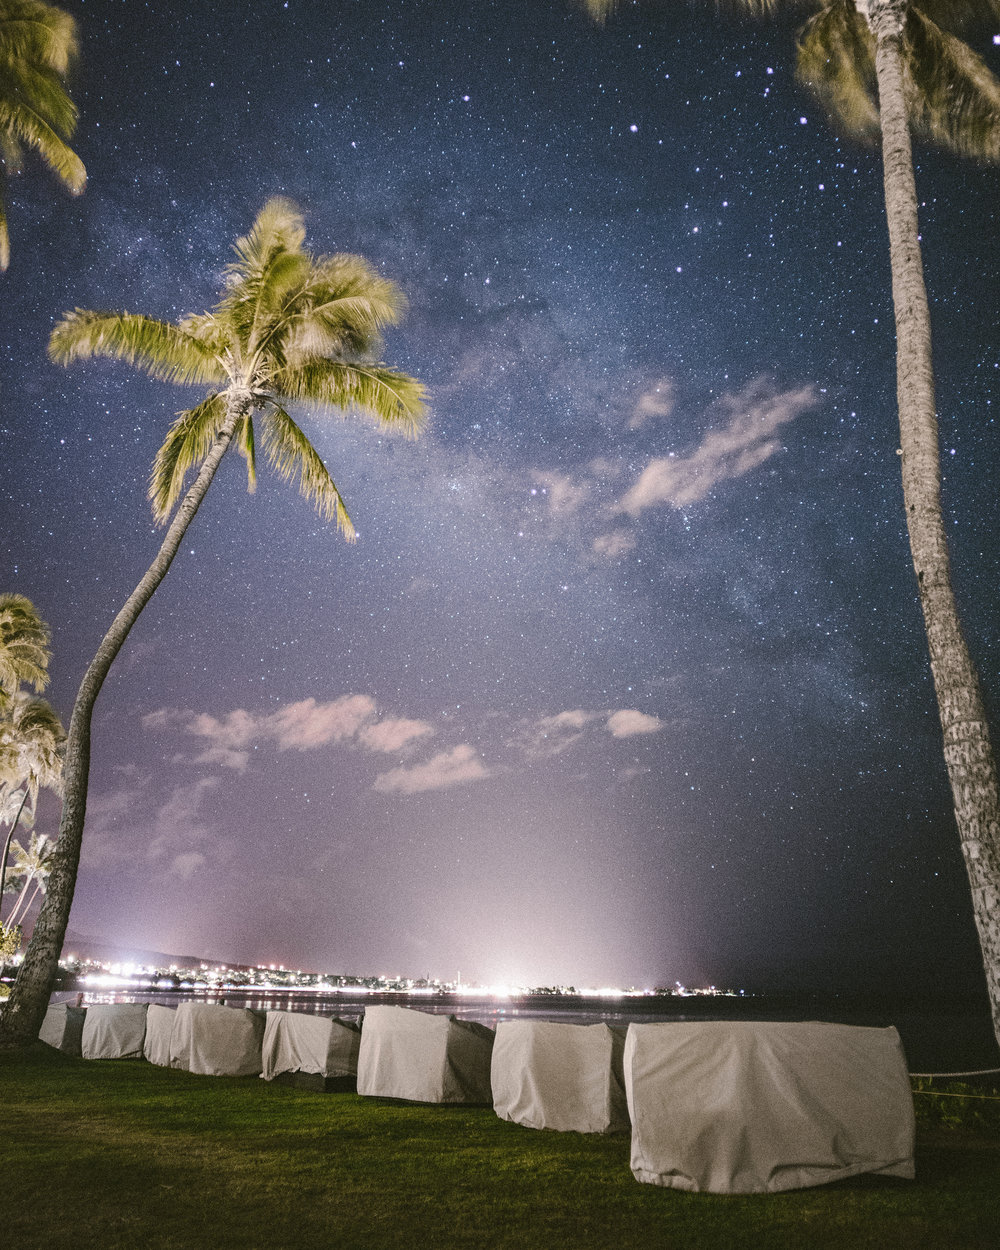 07.08.2016 // catching the milky way for the first time in hawaii.